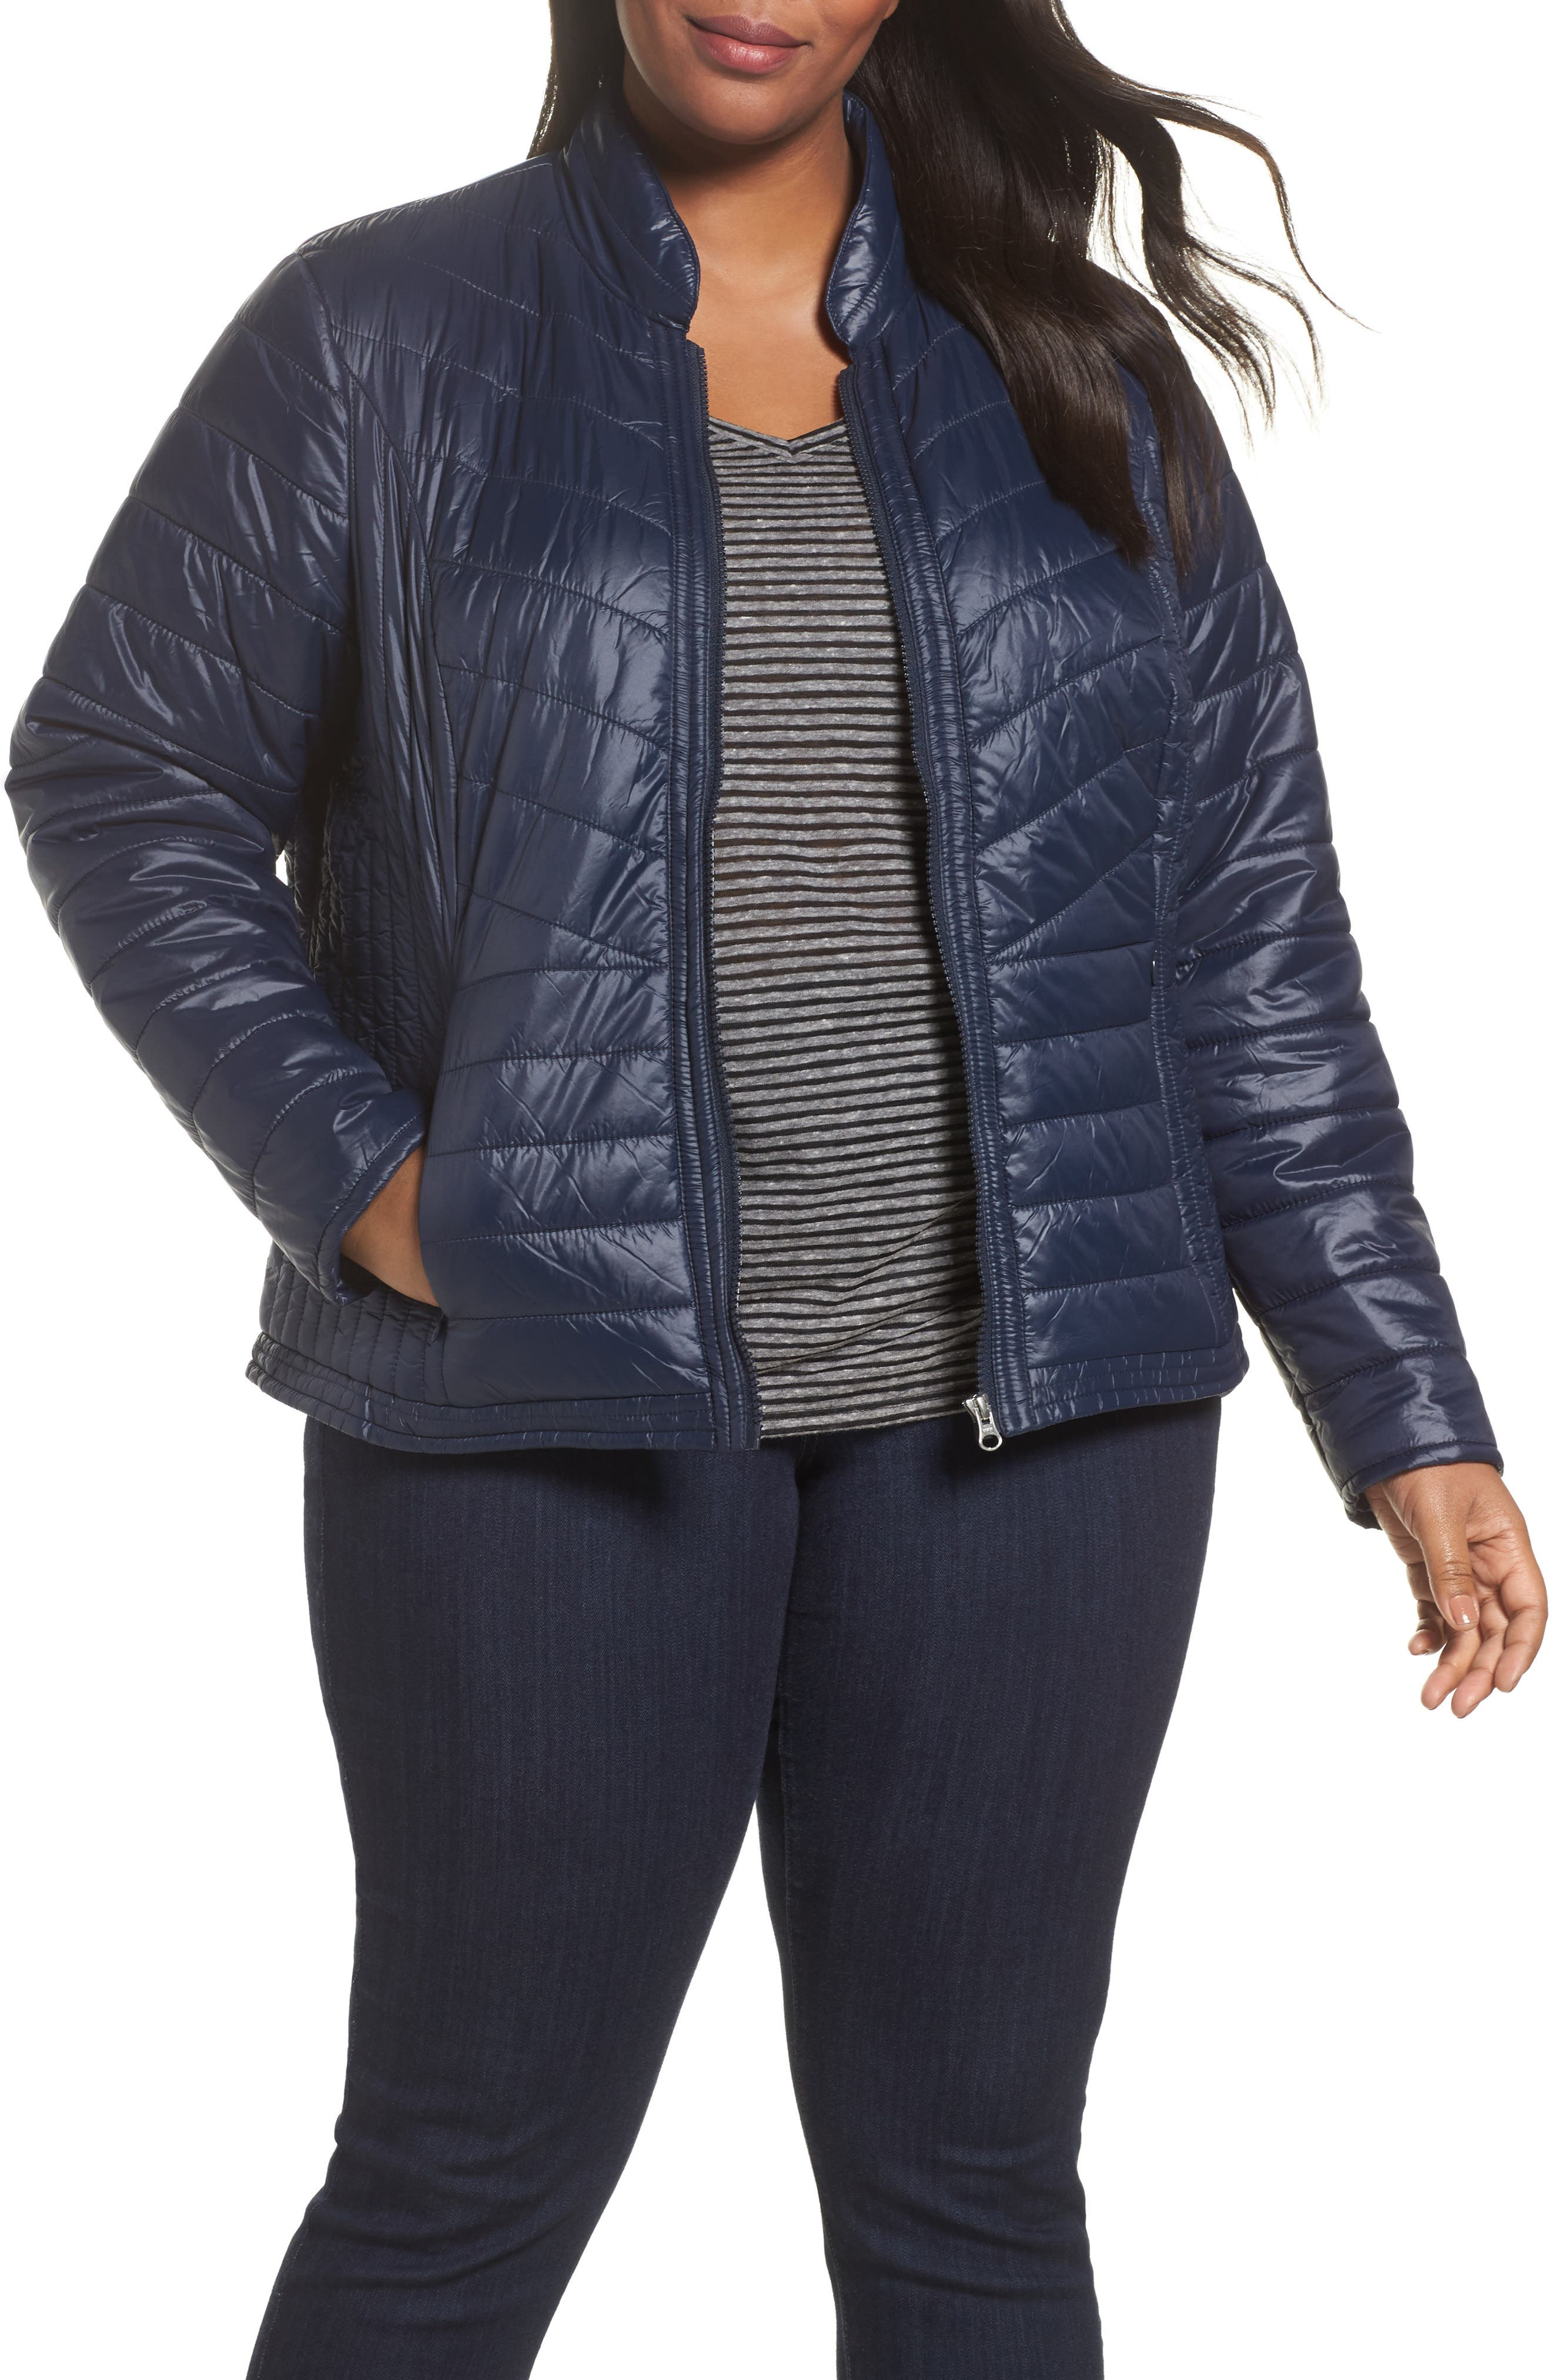 Twisted Quilted Puffer Jacket,                         Main,                         color, 411